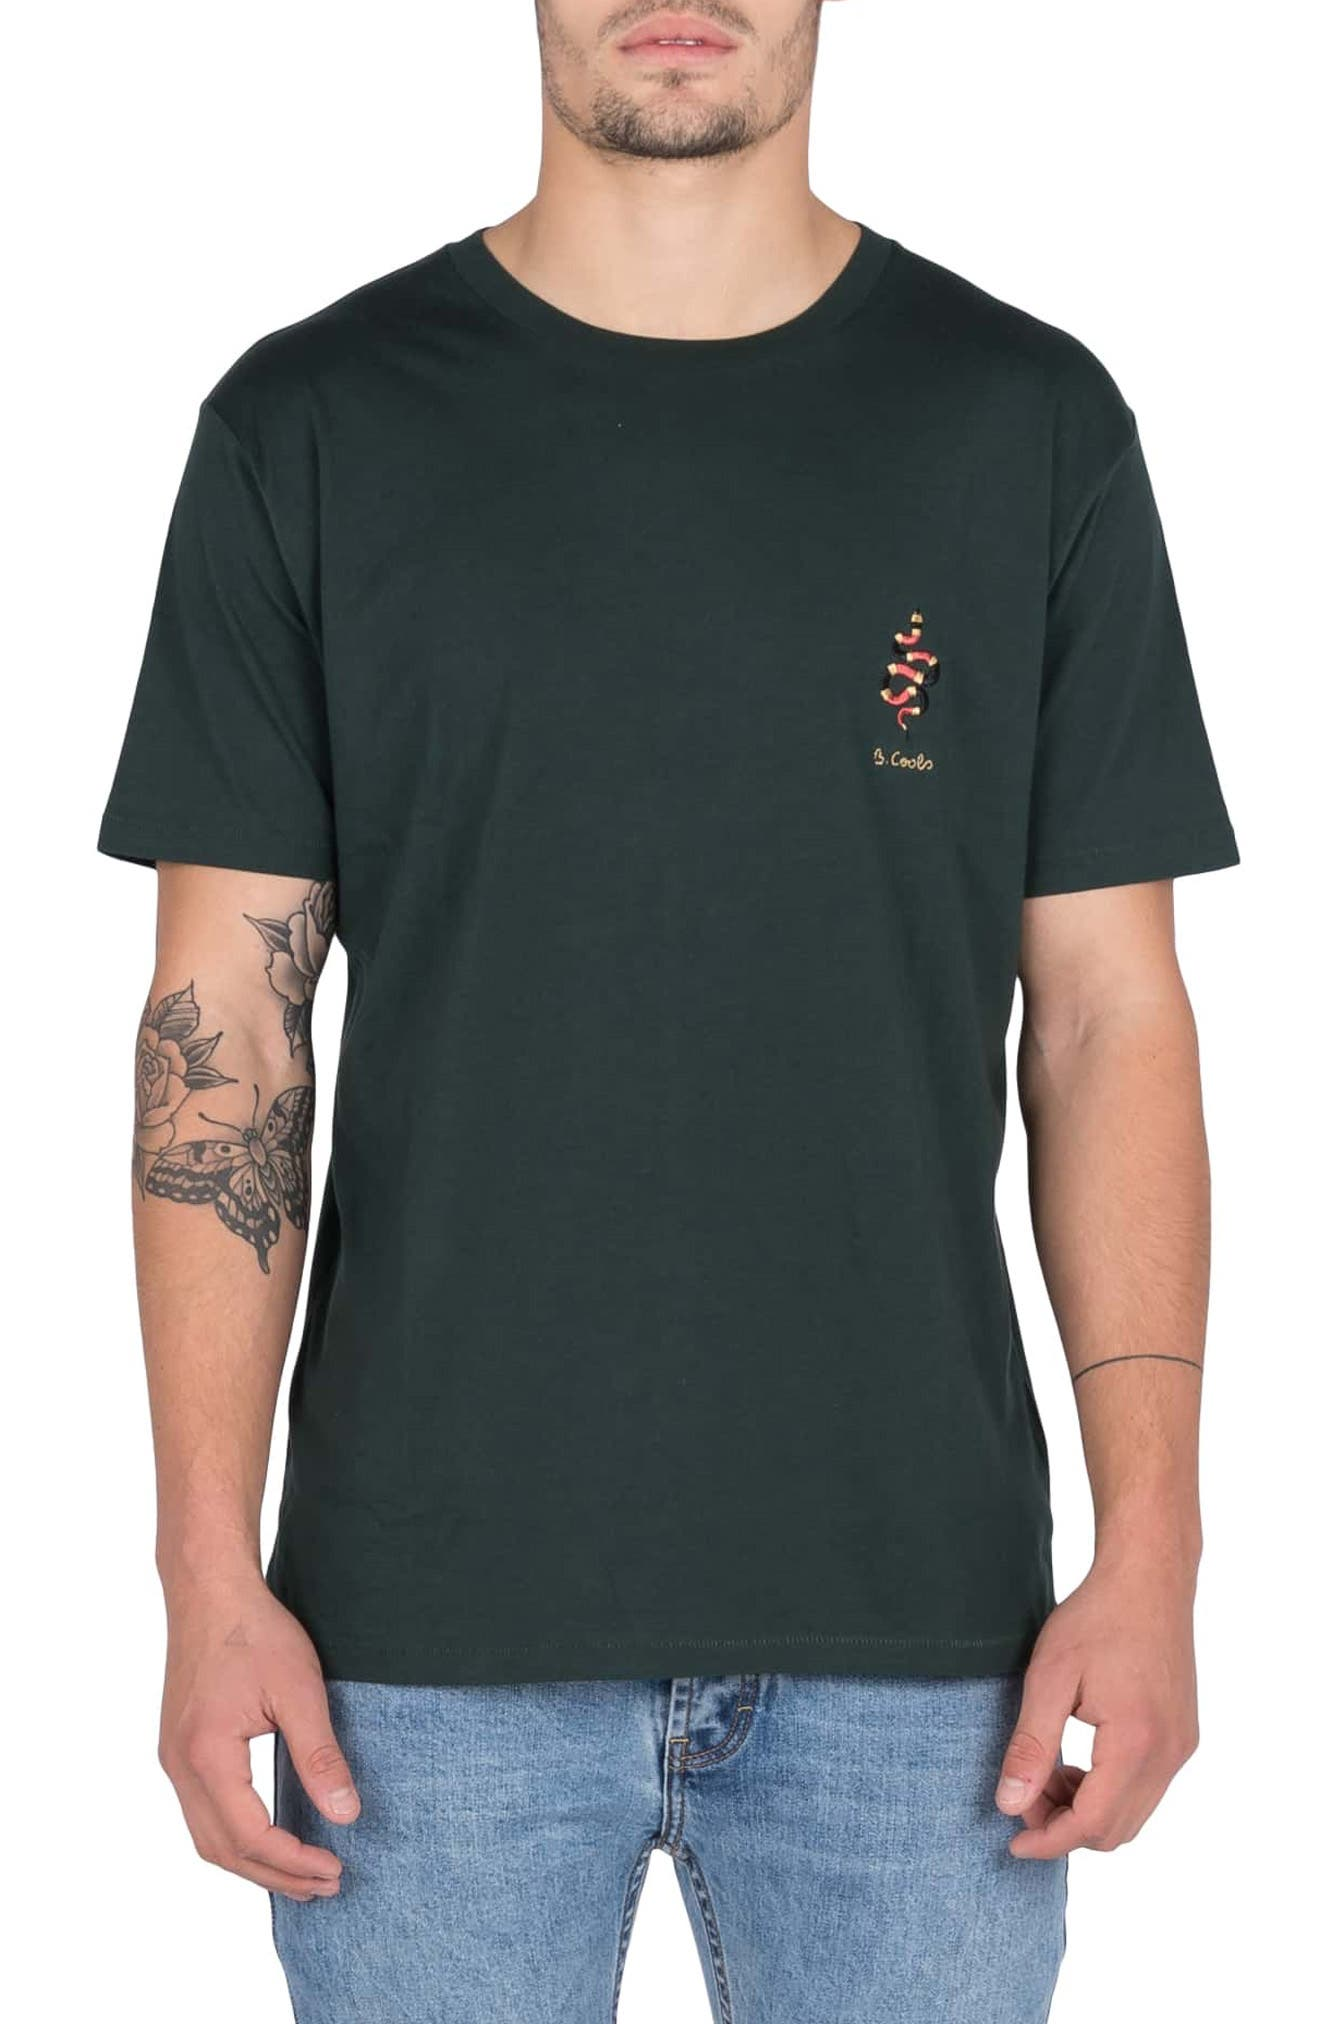 BARNEY COOLS Embroidered Snake T-Shirt in Forest